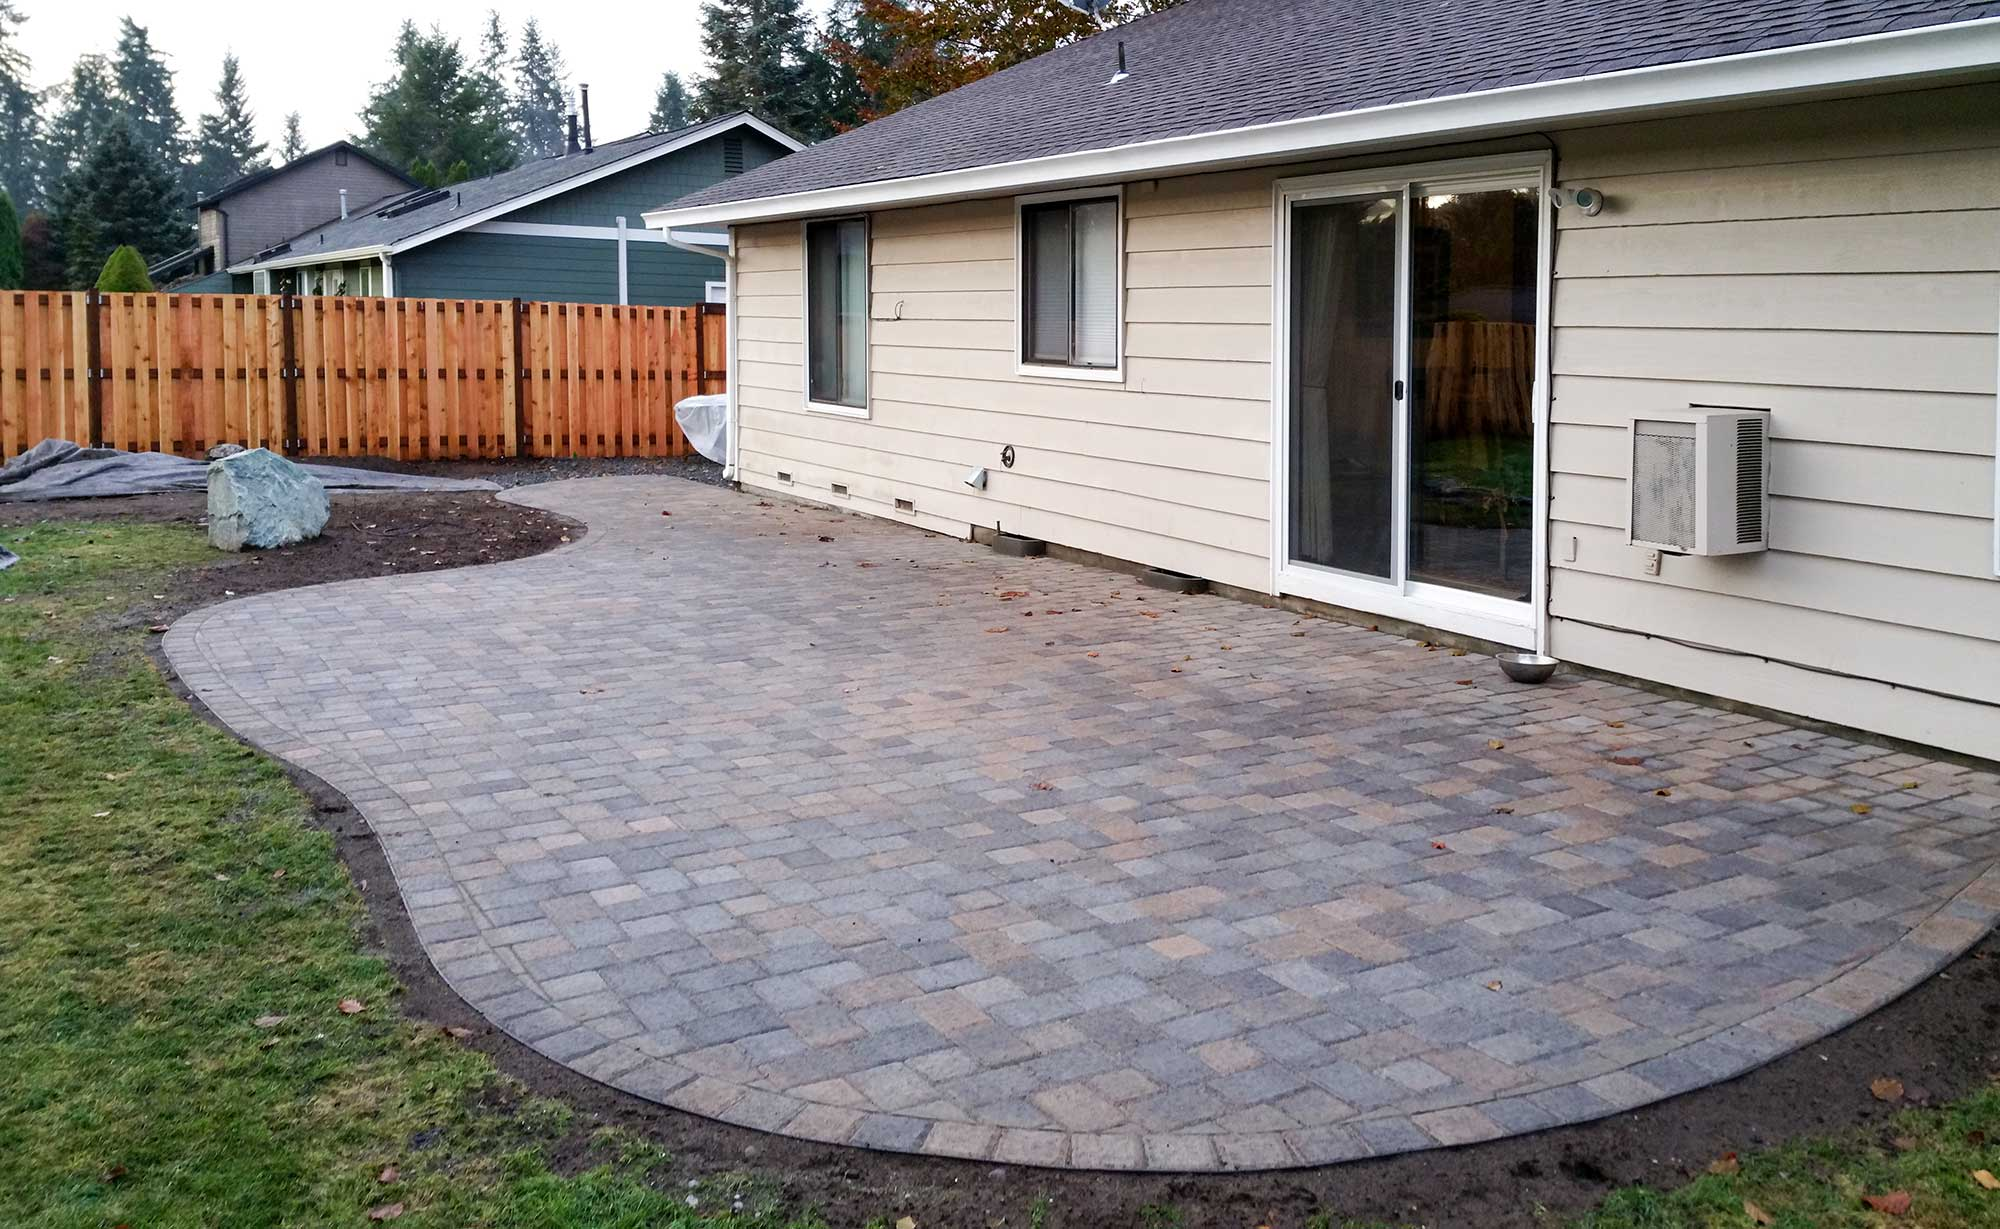 Merveilleux Paver Patio, Jamestown Blend